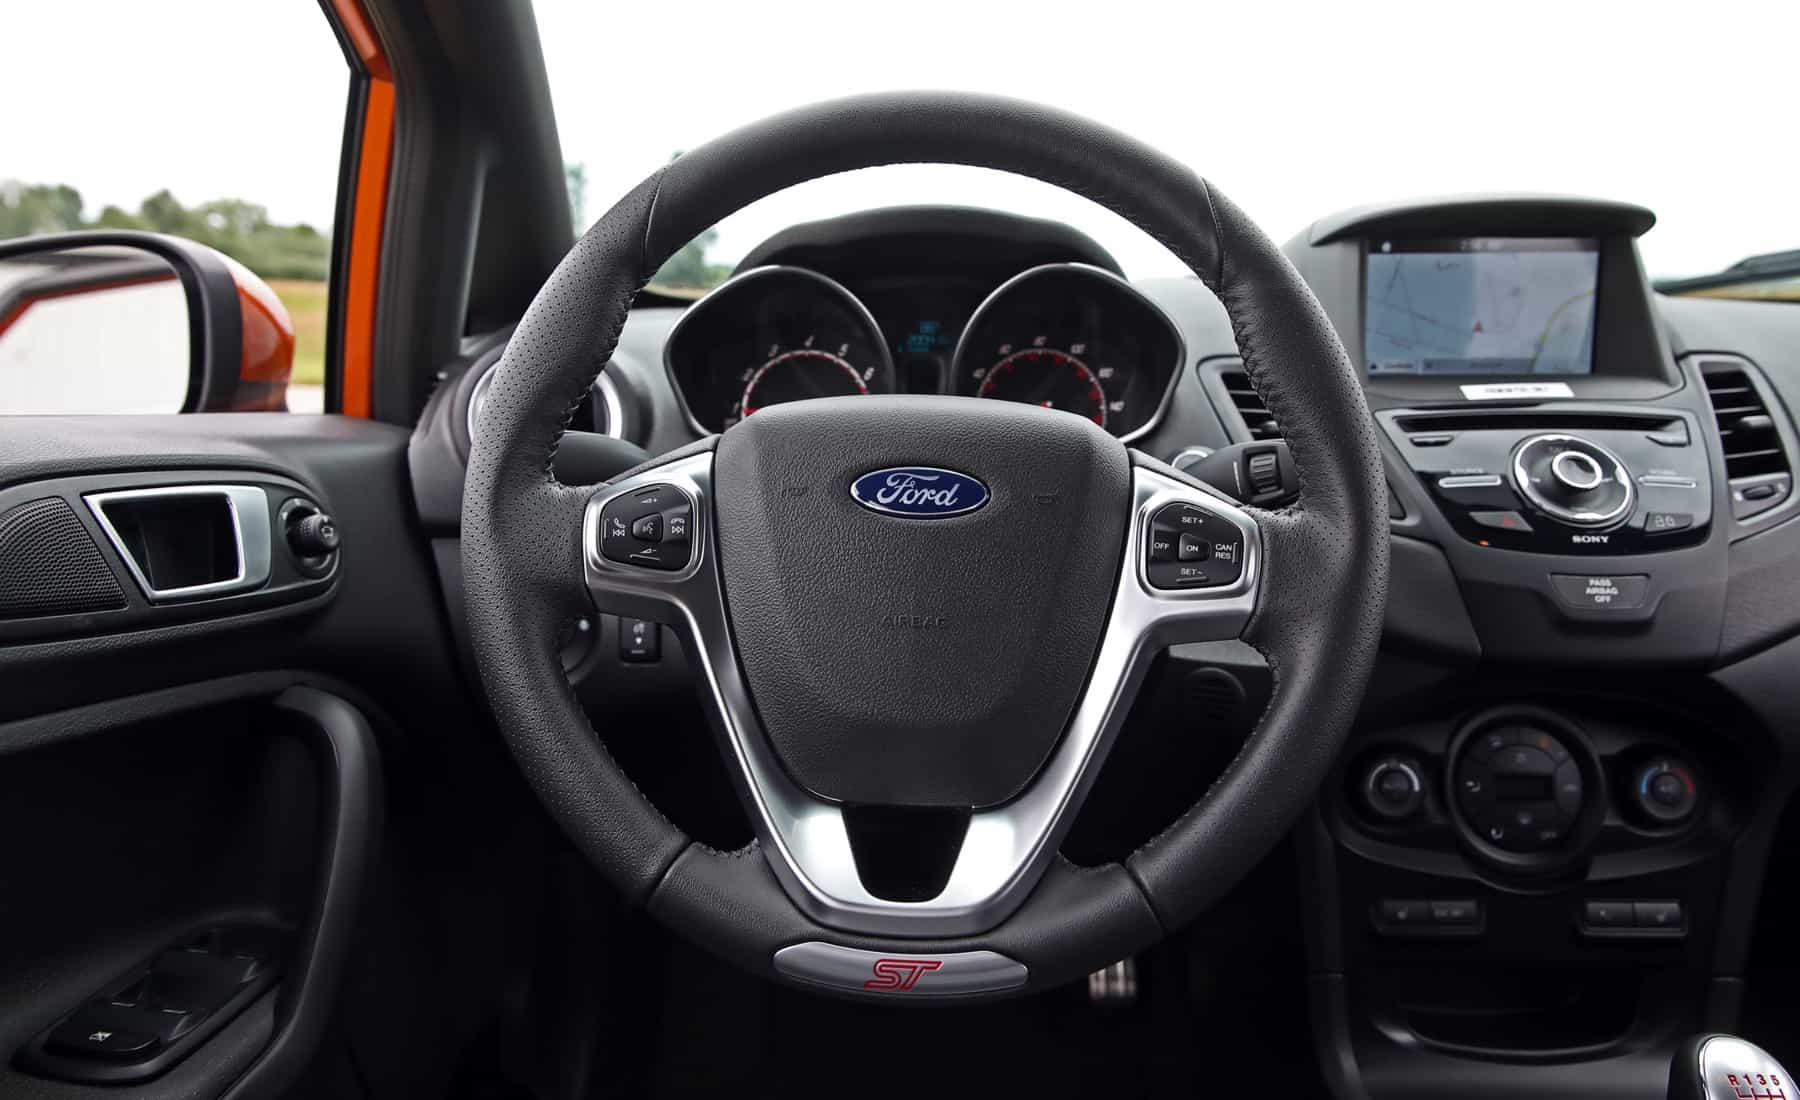 2017 Ford Fiesta ST Interior View Steering (Photo 33 of 47)